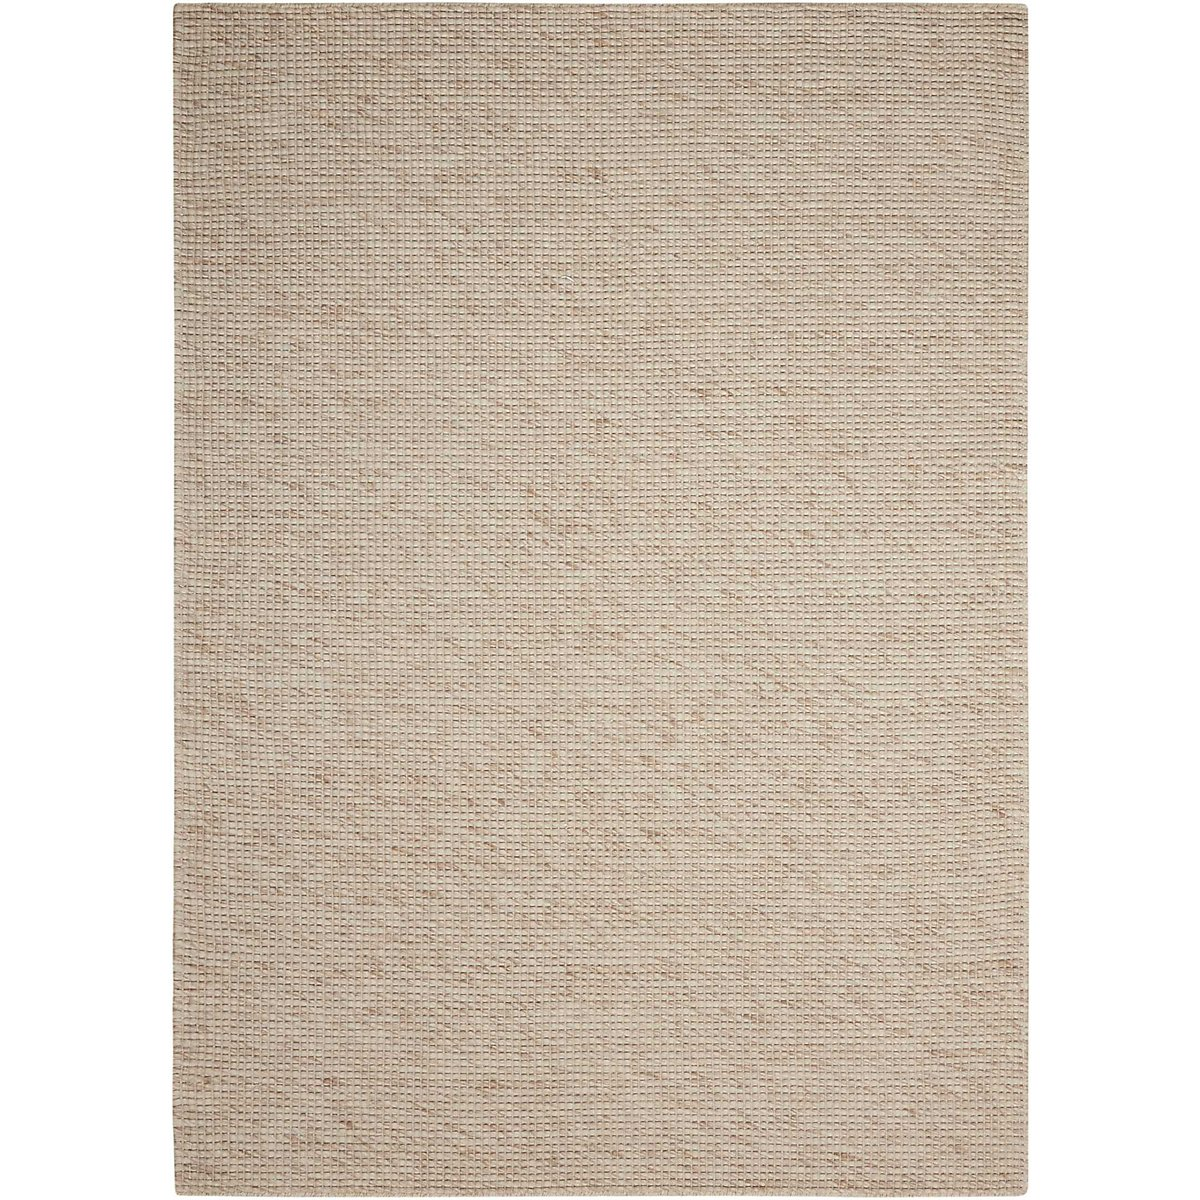 Lowland Light Taupe 8X10 Area Rug